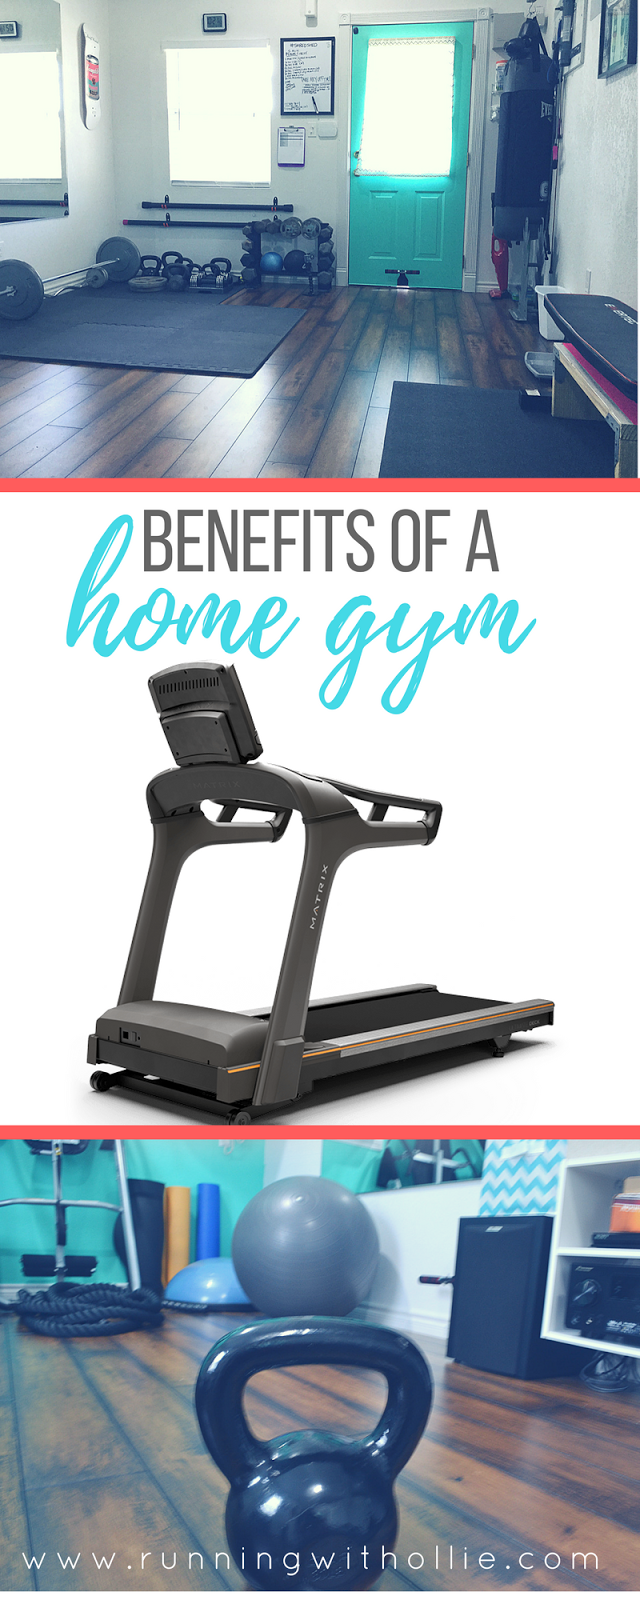 Running with ollie: 7 benefits of a home gym & cardio interval